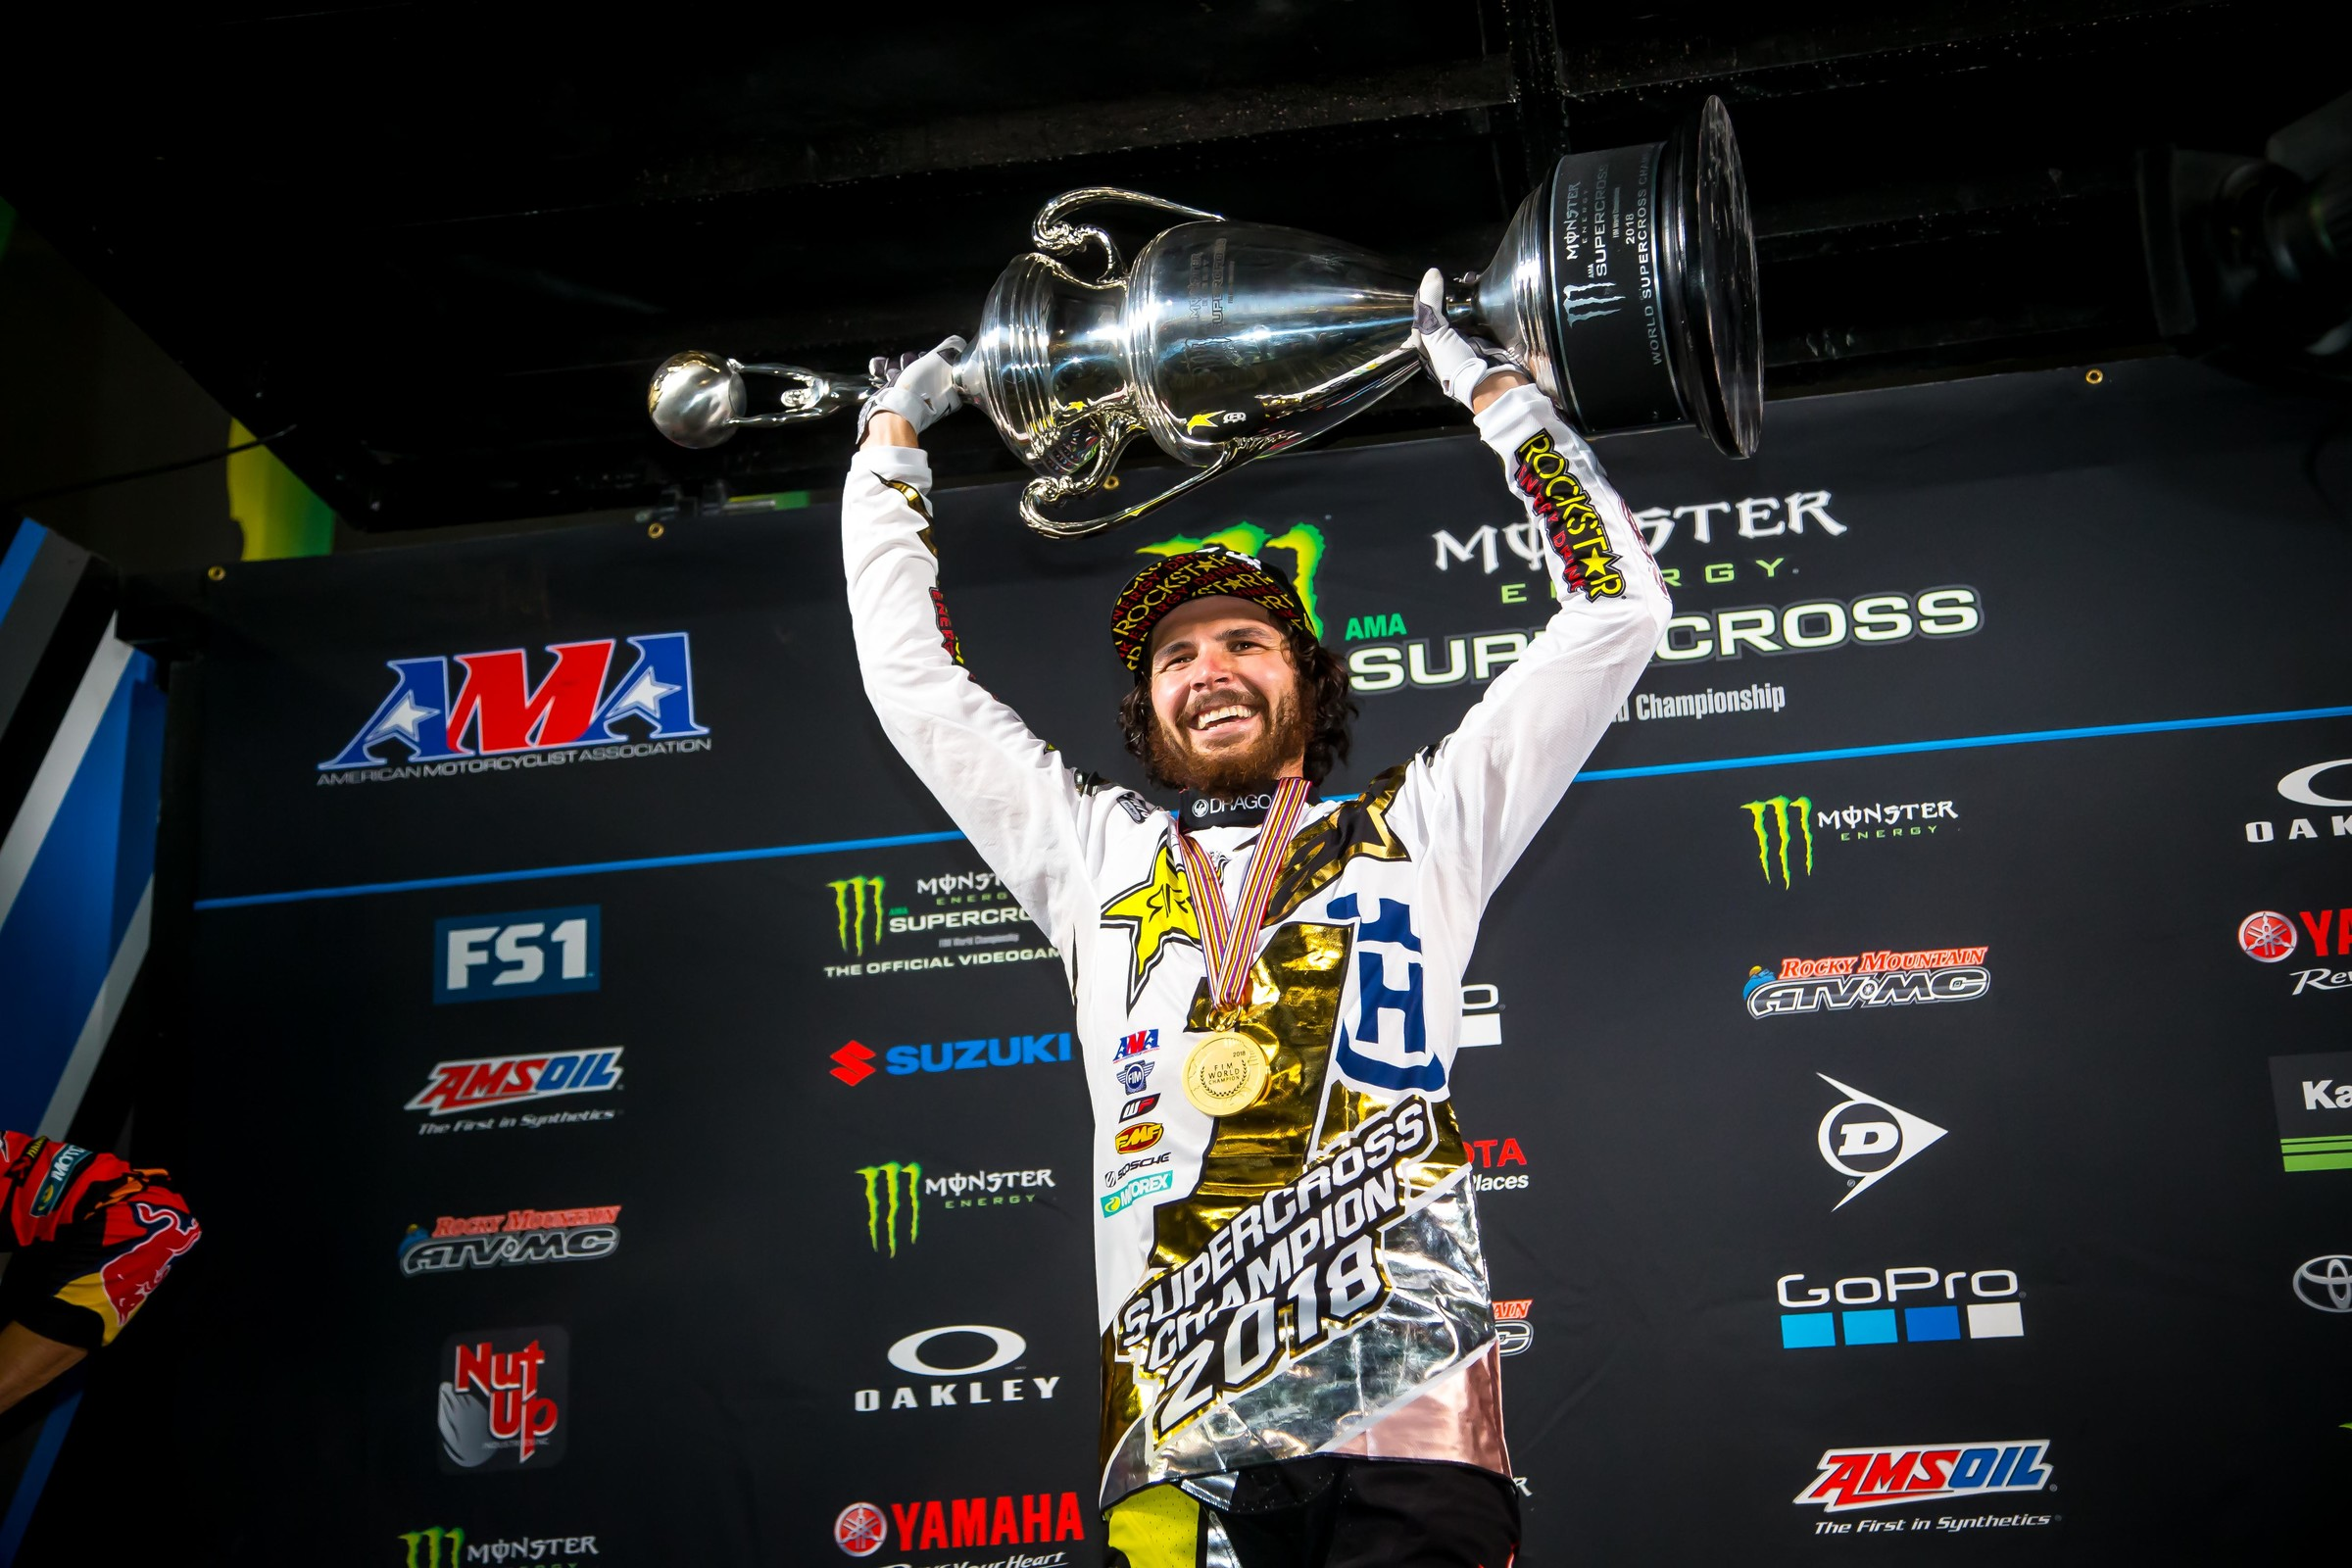 Jason Anderson led the 450SX in points after the first four rounds last season, and hoisted the Monster Energy AMA Supercross trophy after the season finale in Las Vegas.